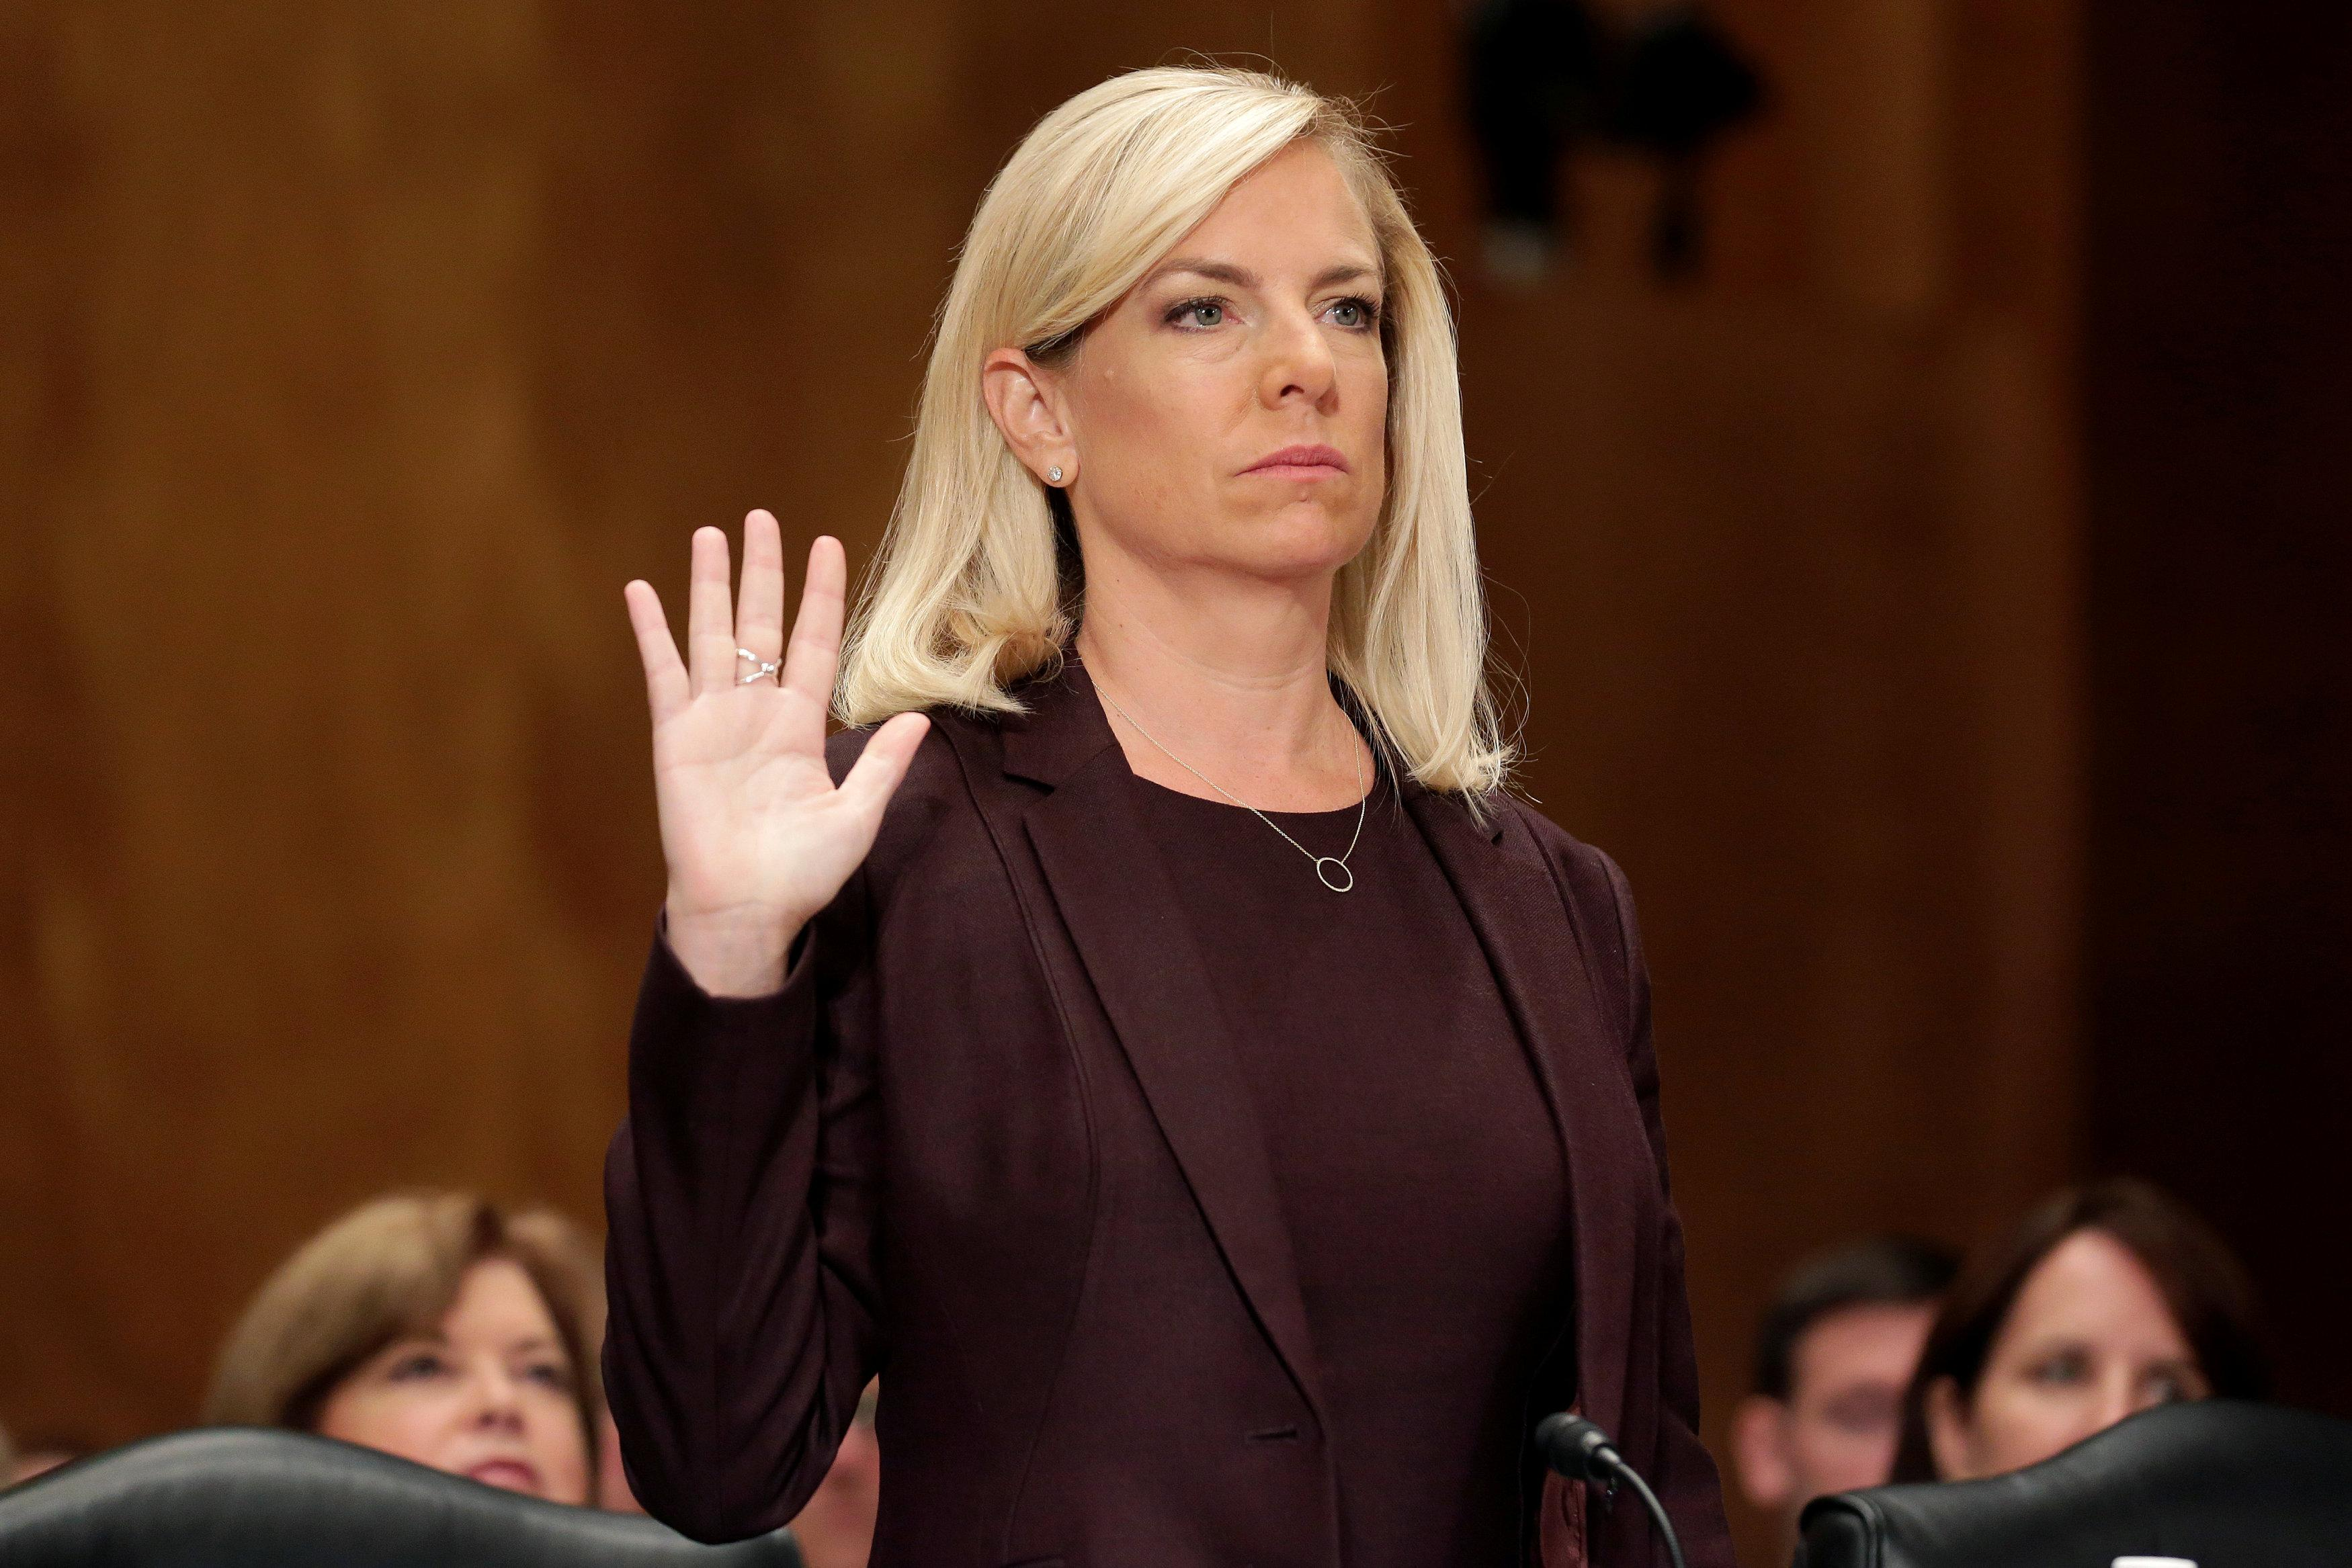 Kirstjen Nielsen is sworn in before testifying to the Senate Homeland Security and Governmental Affairs Committee on her nomination to be secretary of the Department of Homeland Security (DHS) in Washington, U.S. on November 8, 2017.   Joshua Roberts